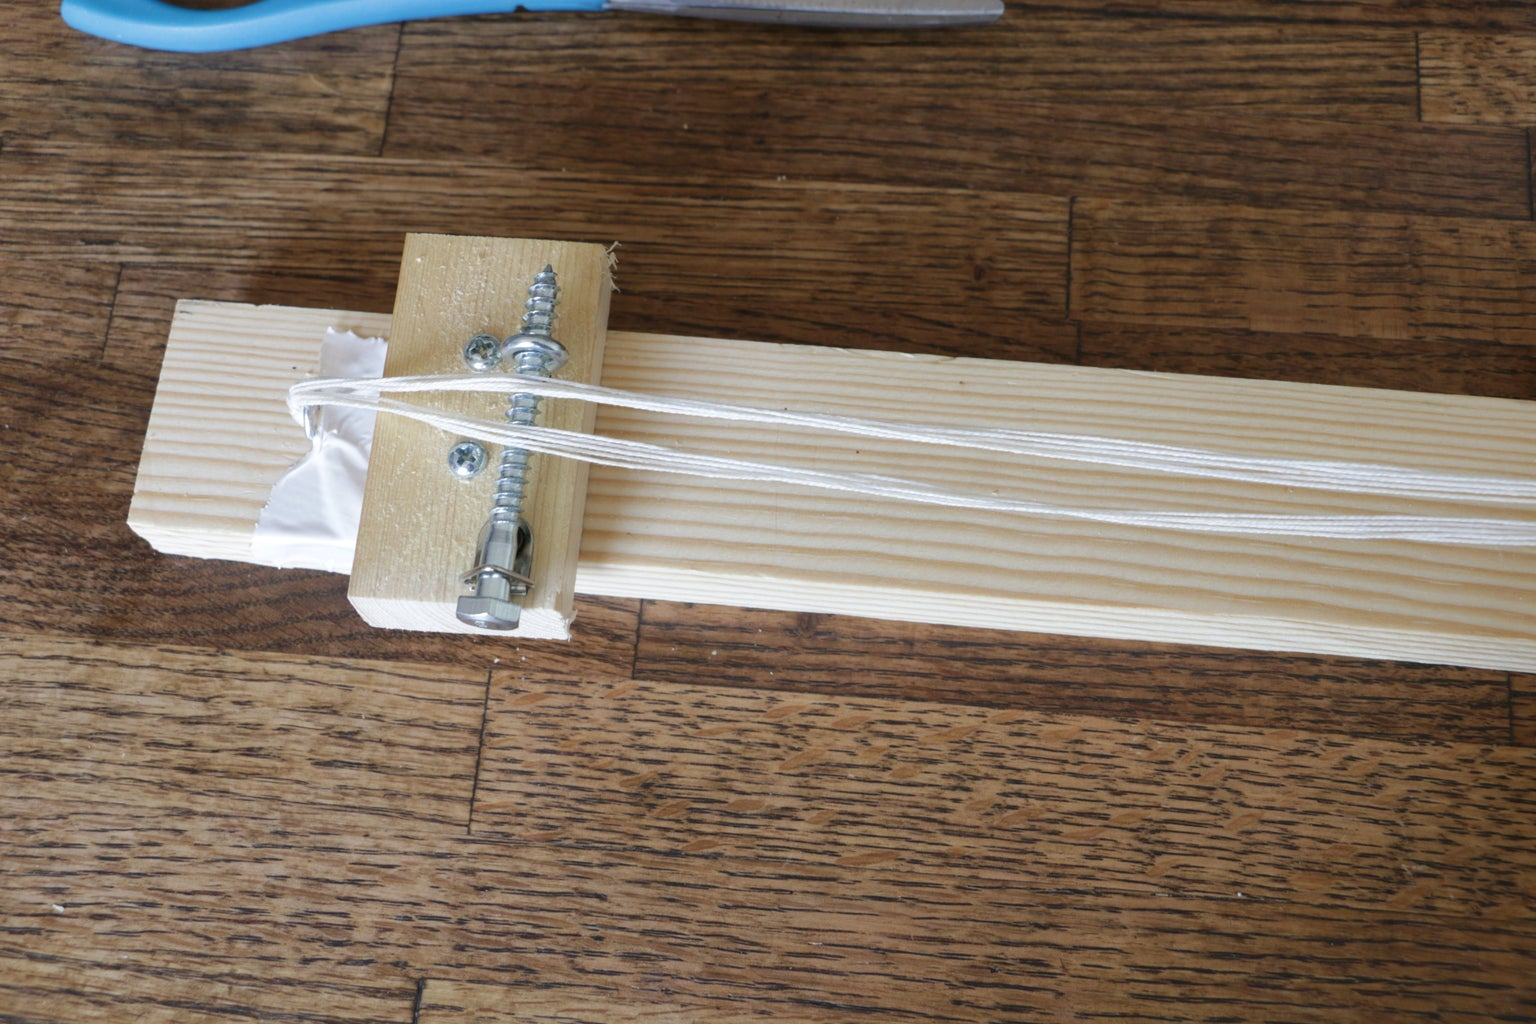 Setting Up the Loom & Threads